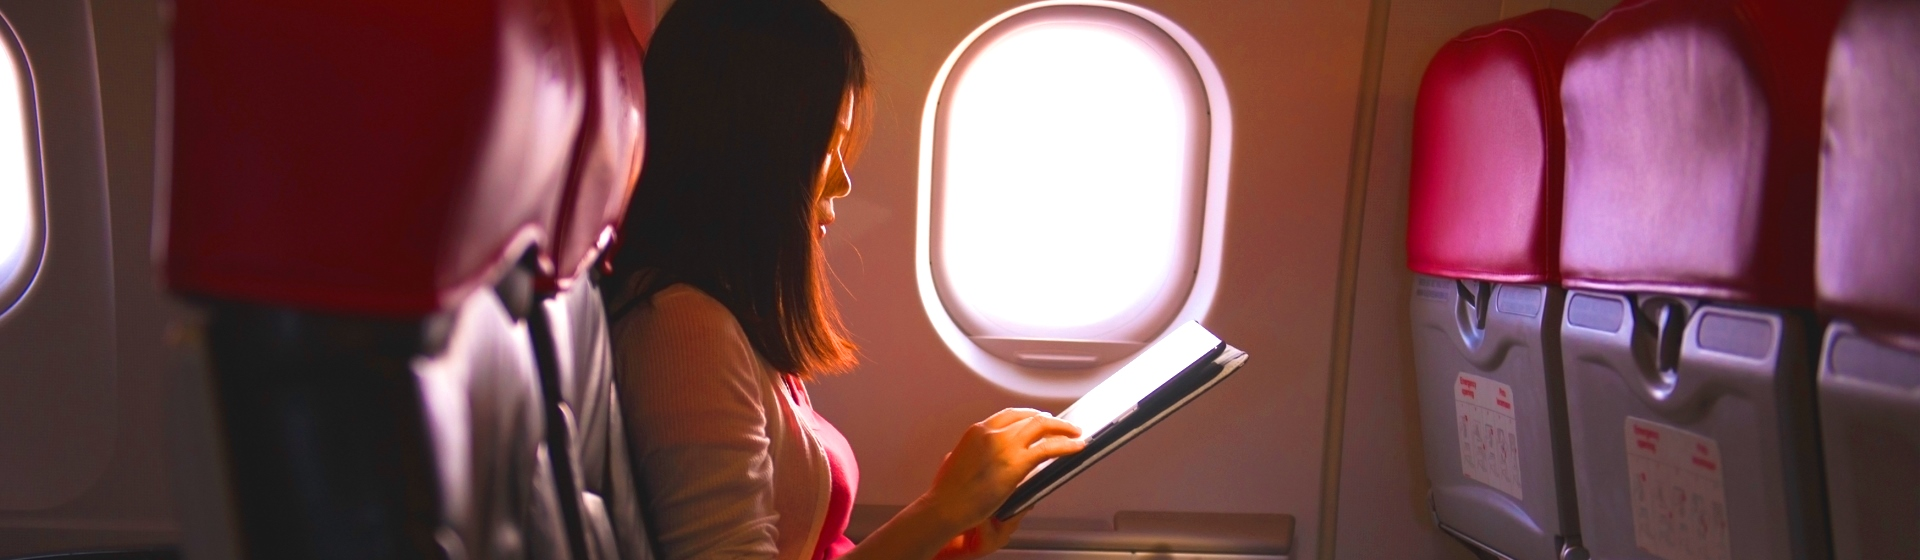 Woman on a plane using her tablet.